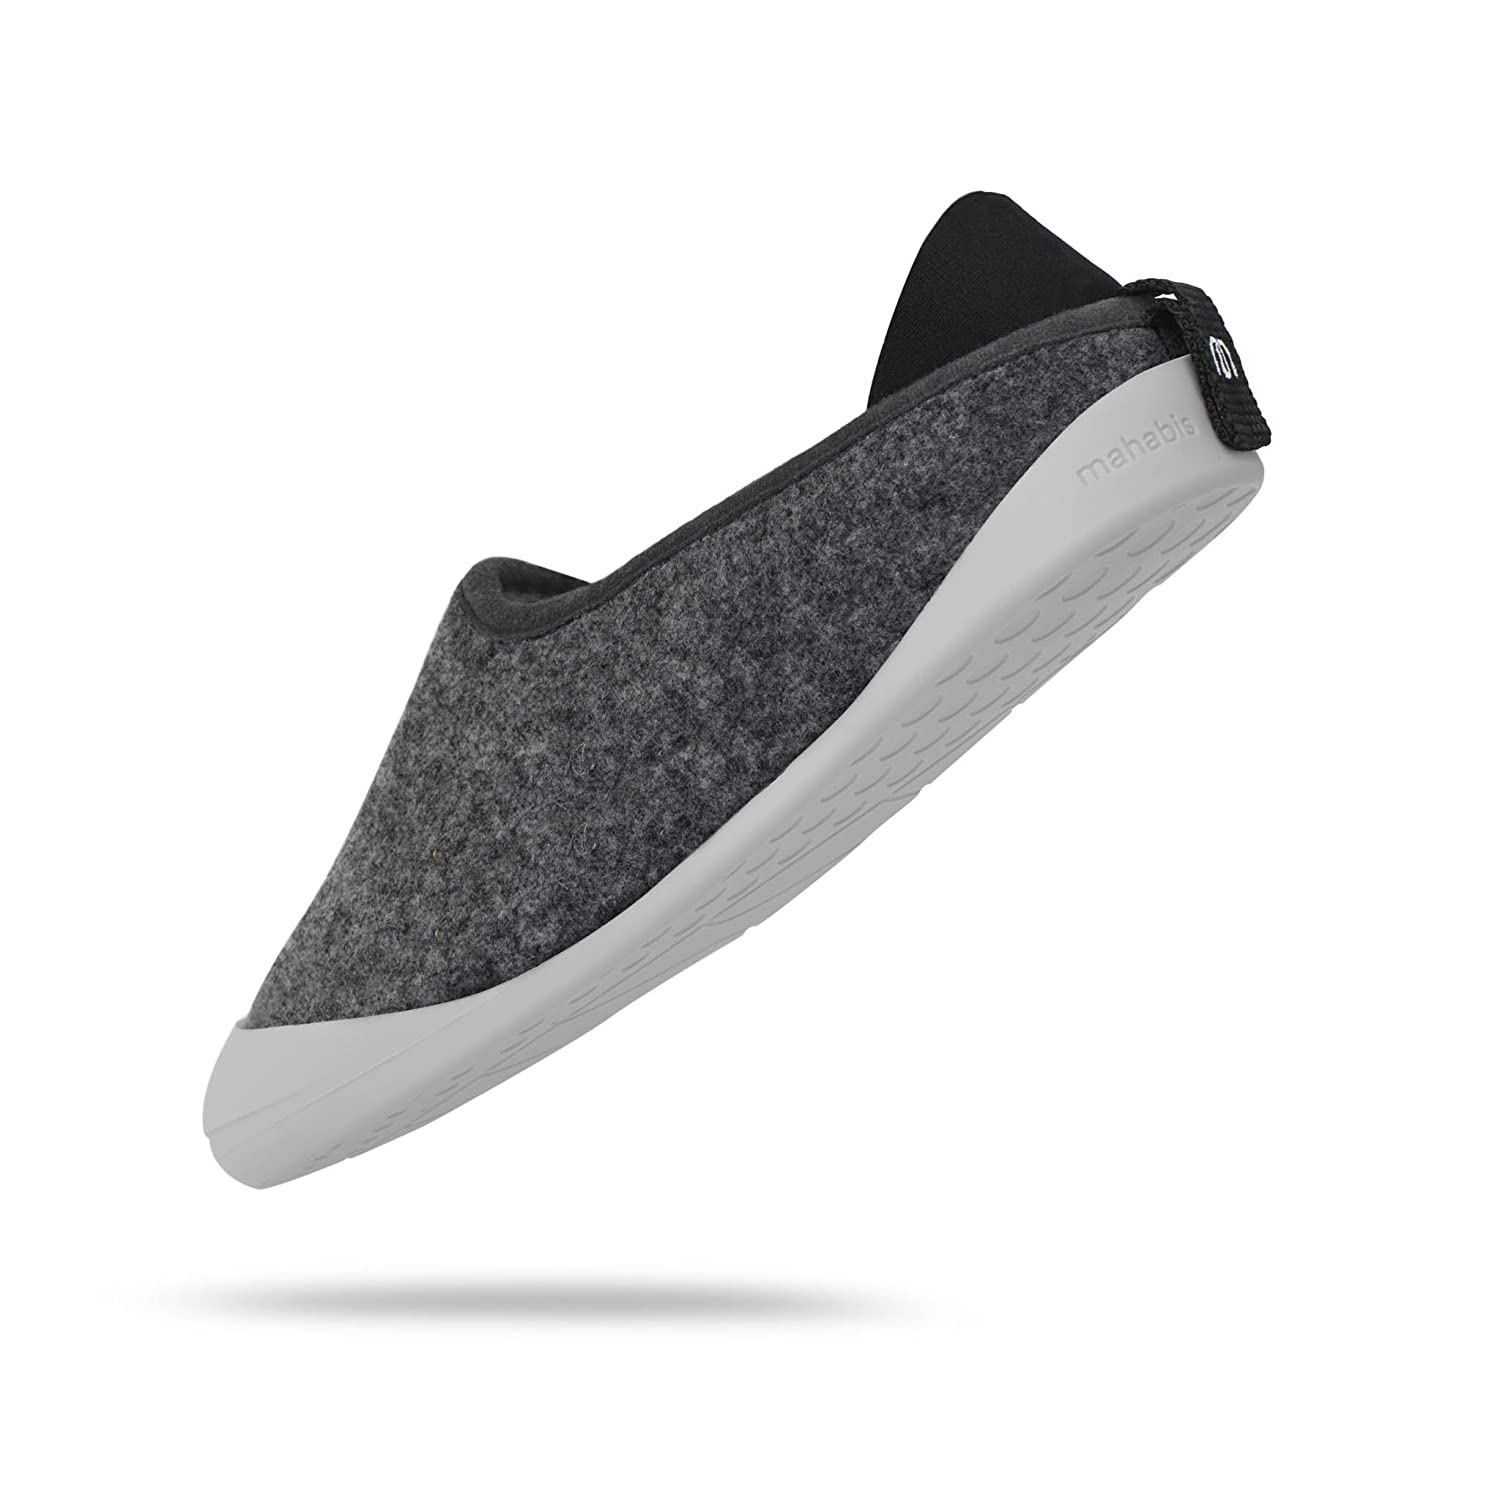 mahabis Larvik Dark Grey Summer Zapatillas con Suela Larvik Light Grey EN Talla 43 EU yymrQ0vya